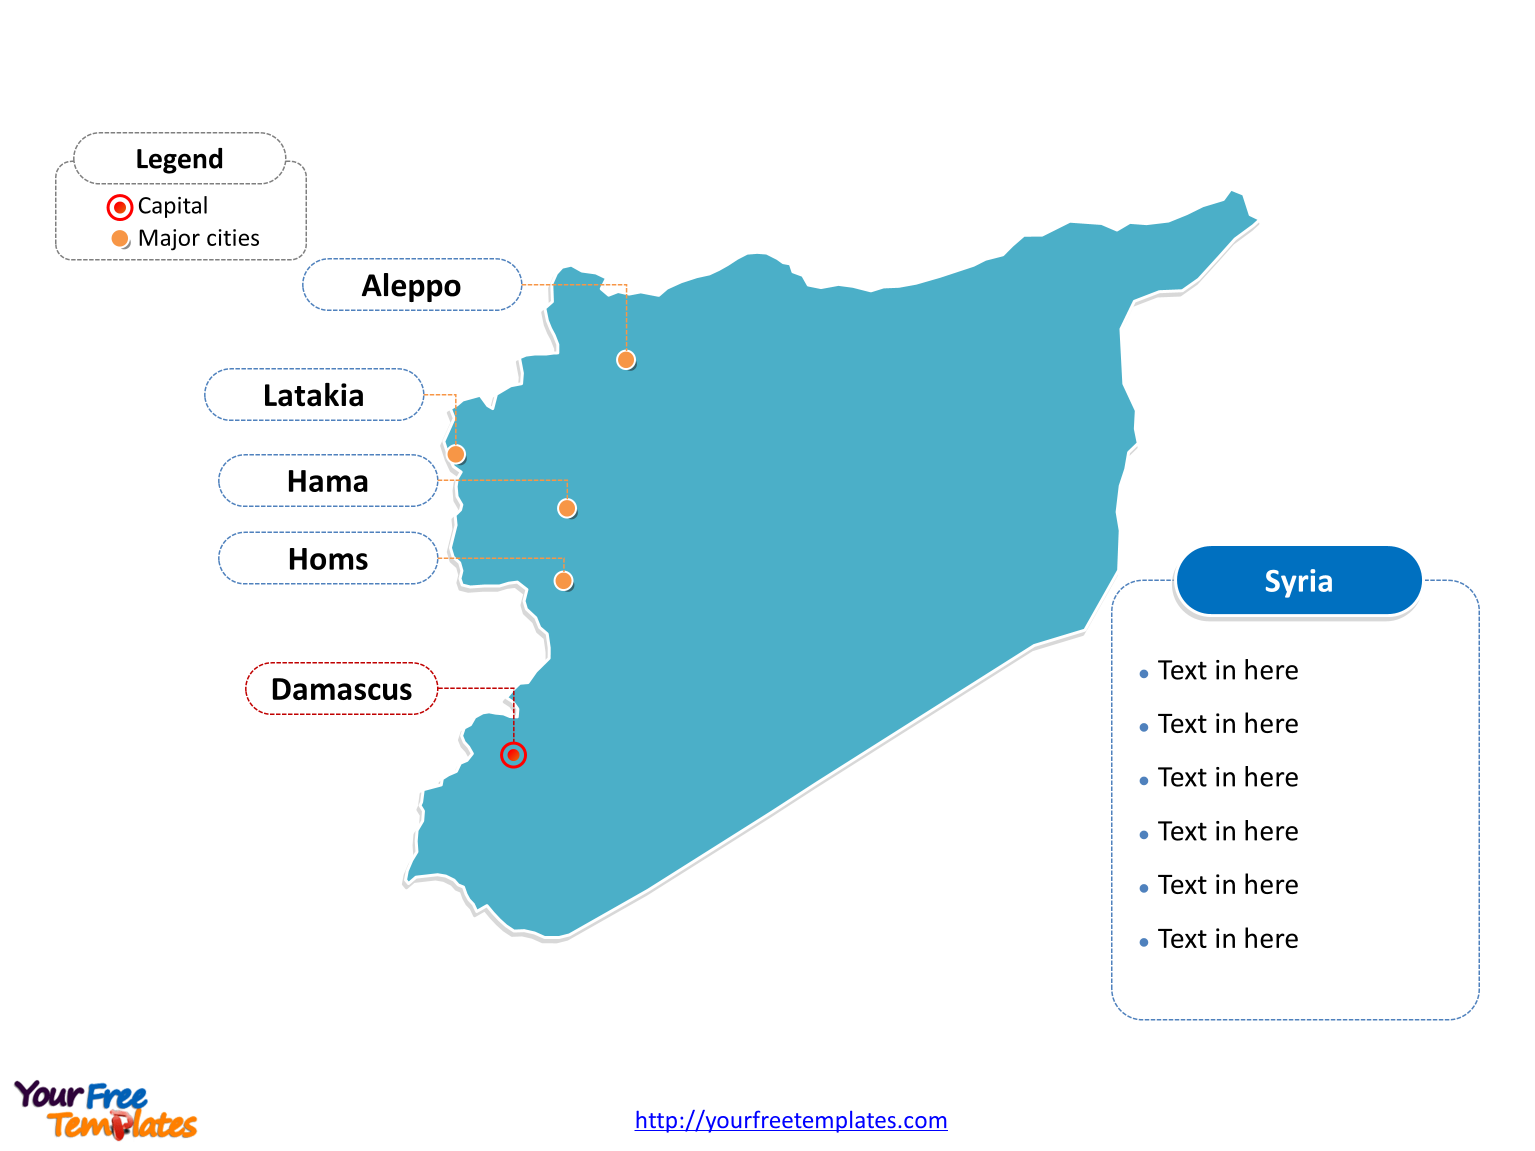 Syria Outline map labeled with cities